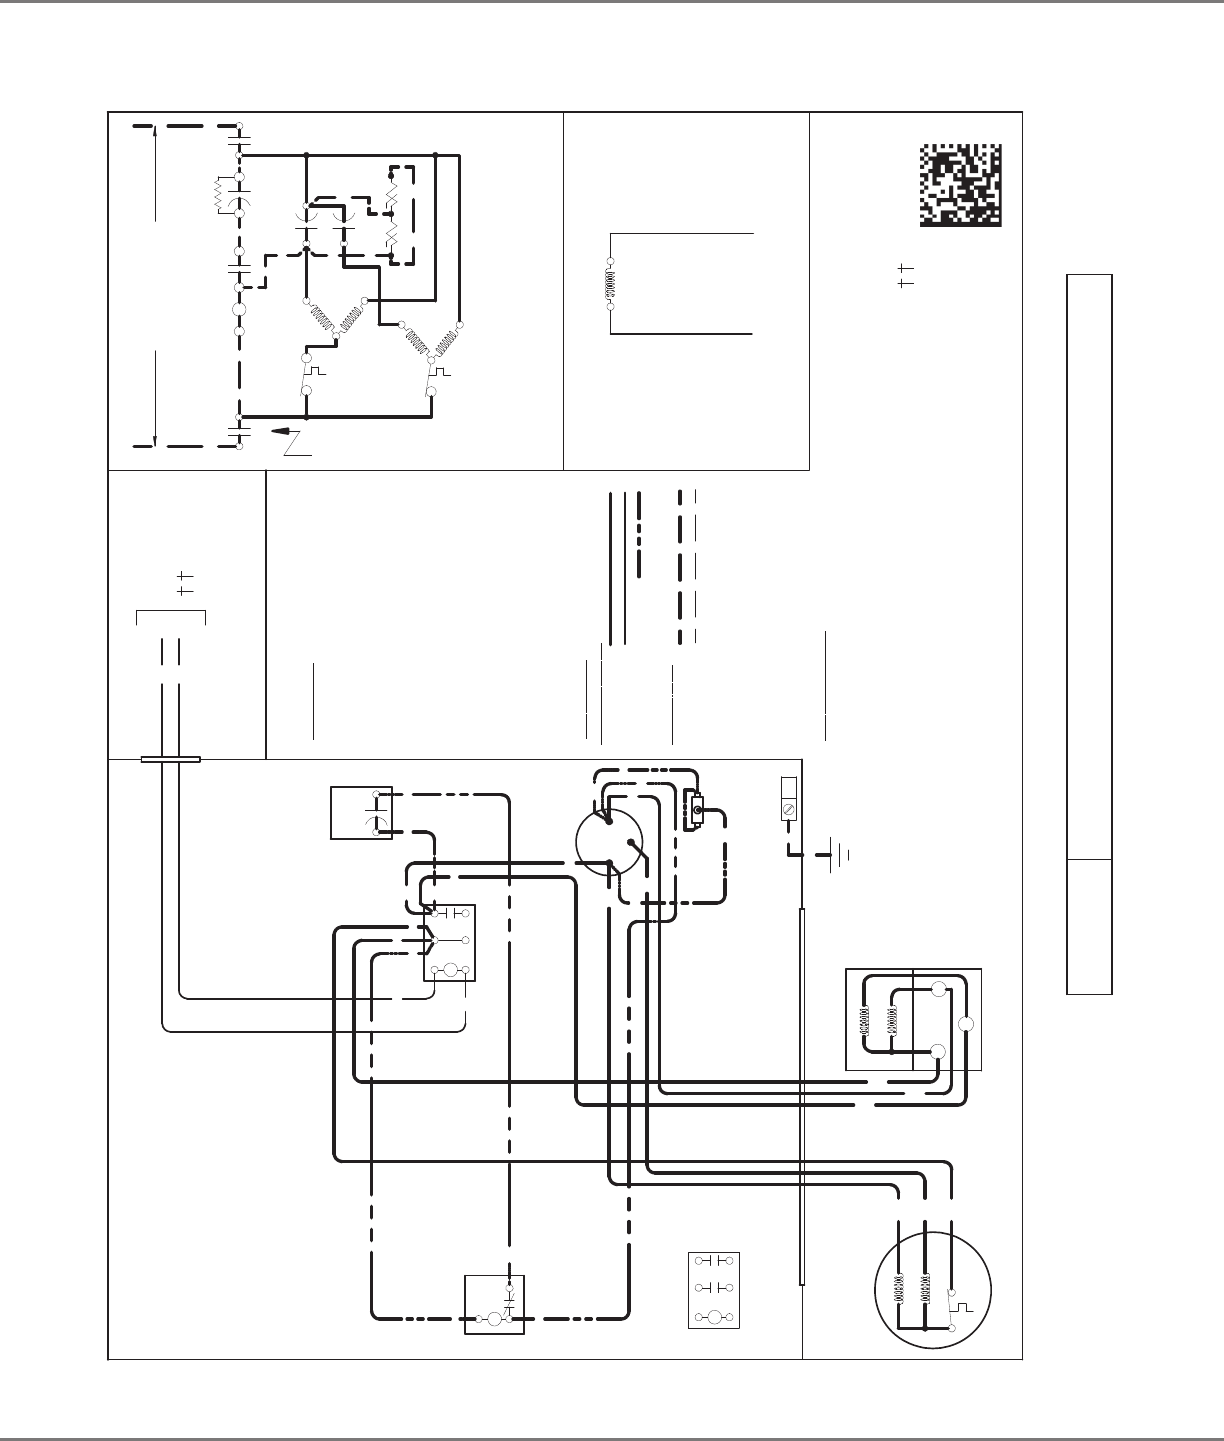 Hot Water Heating System Diagram as well New House Wiring Diagram  #3C383A